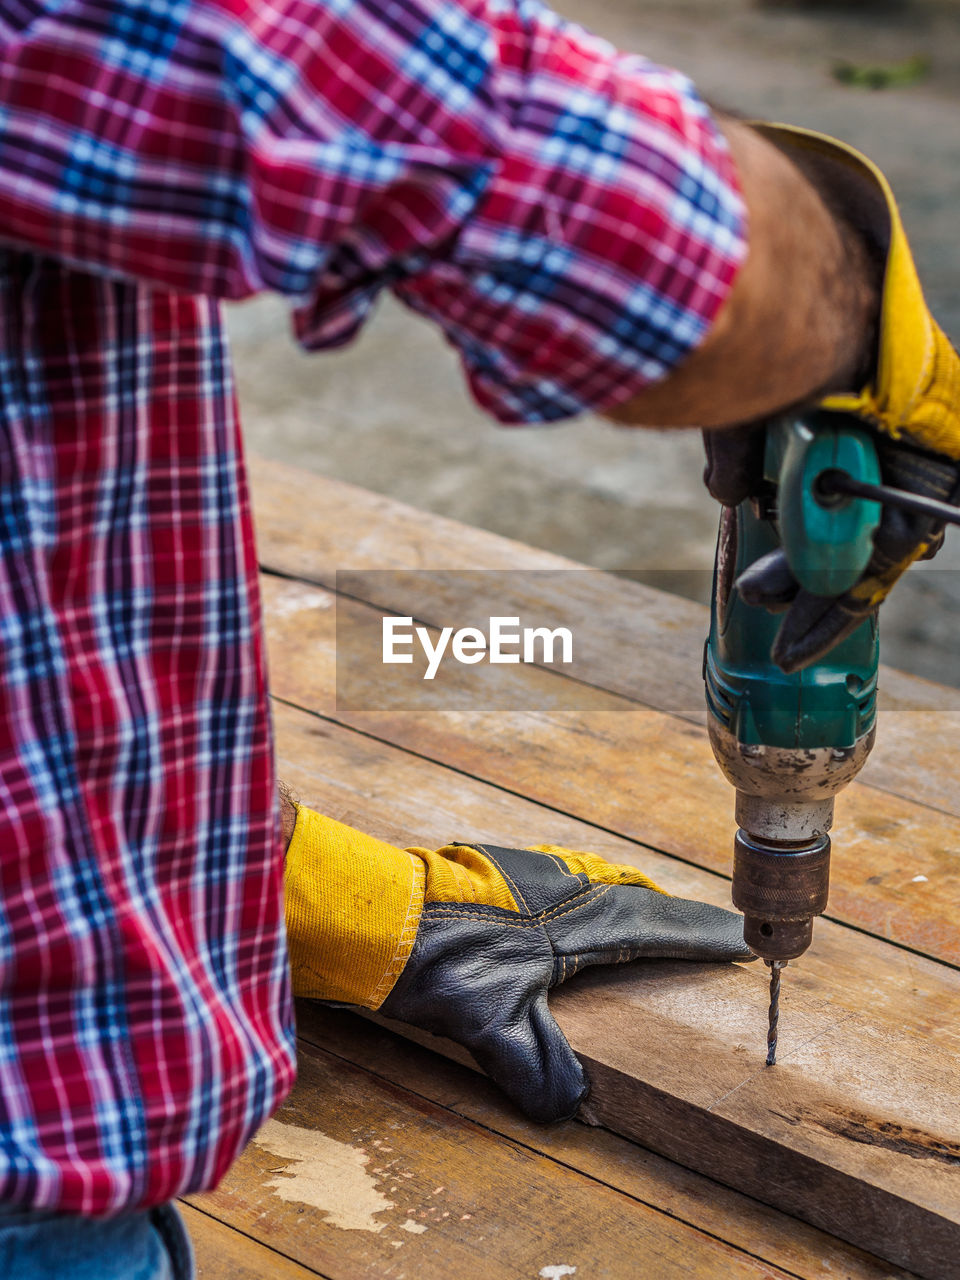 Midsection of man drilling in wood on table